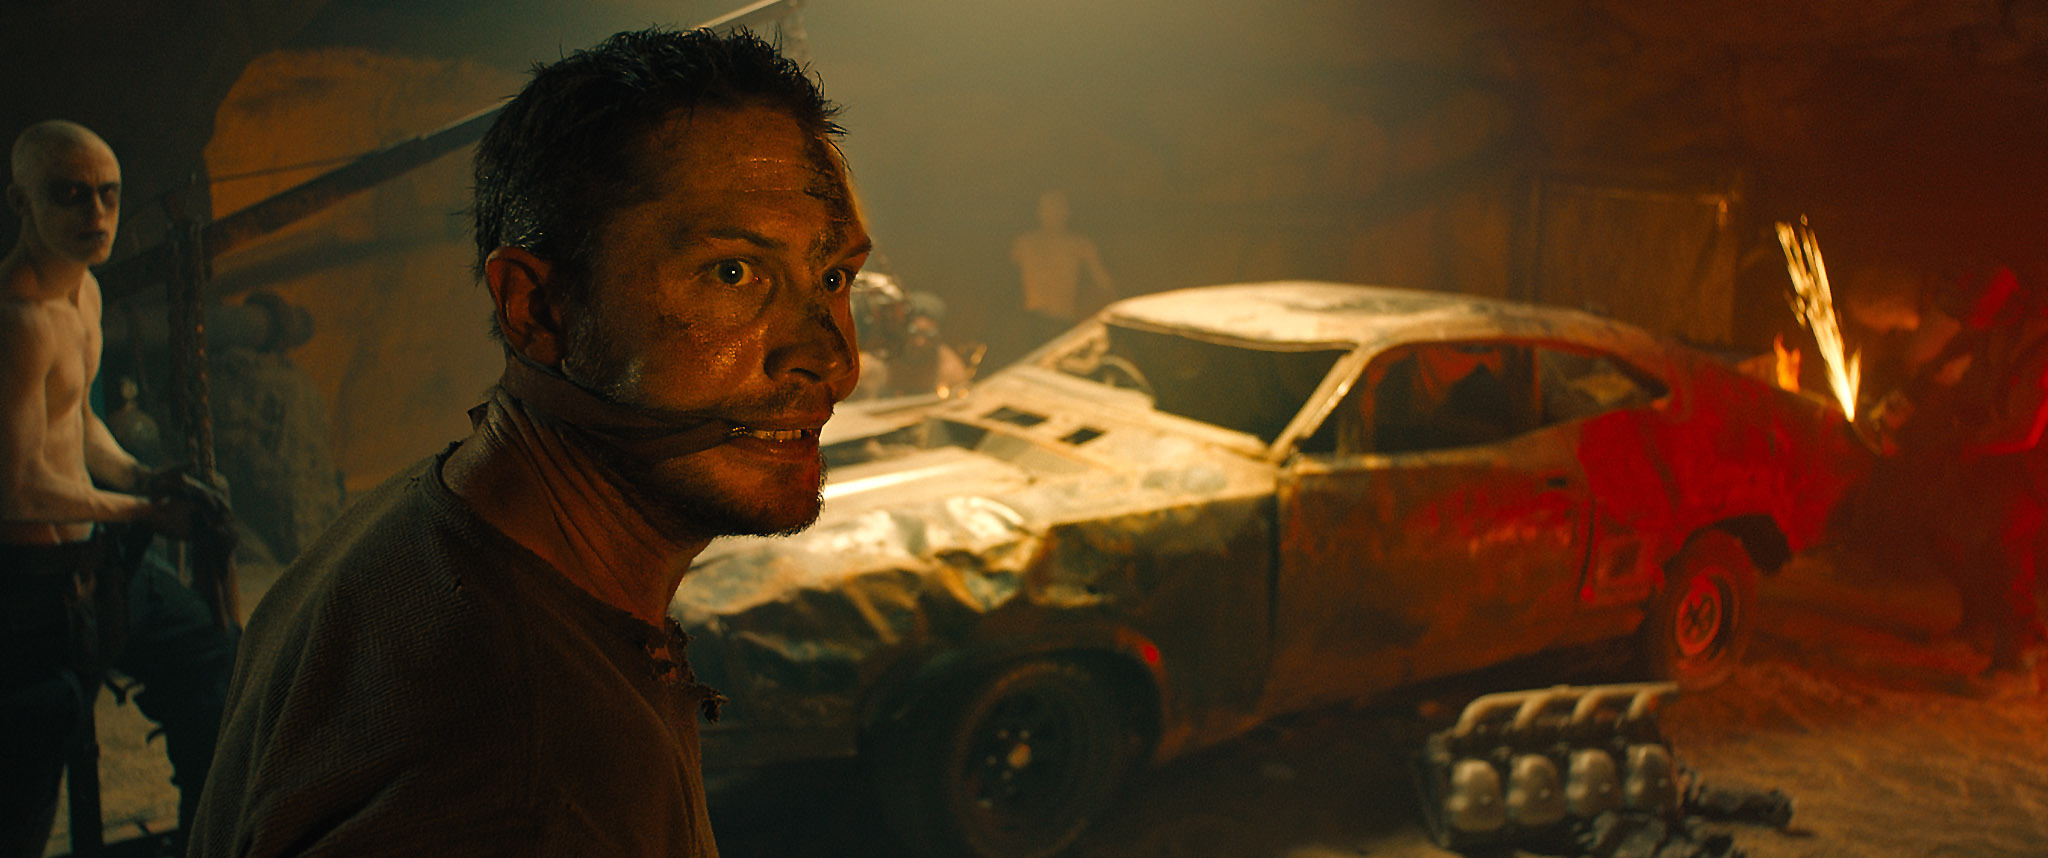 Tom Hardy in Mad Max: Fury Road (2015)